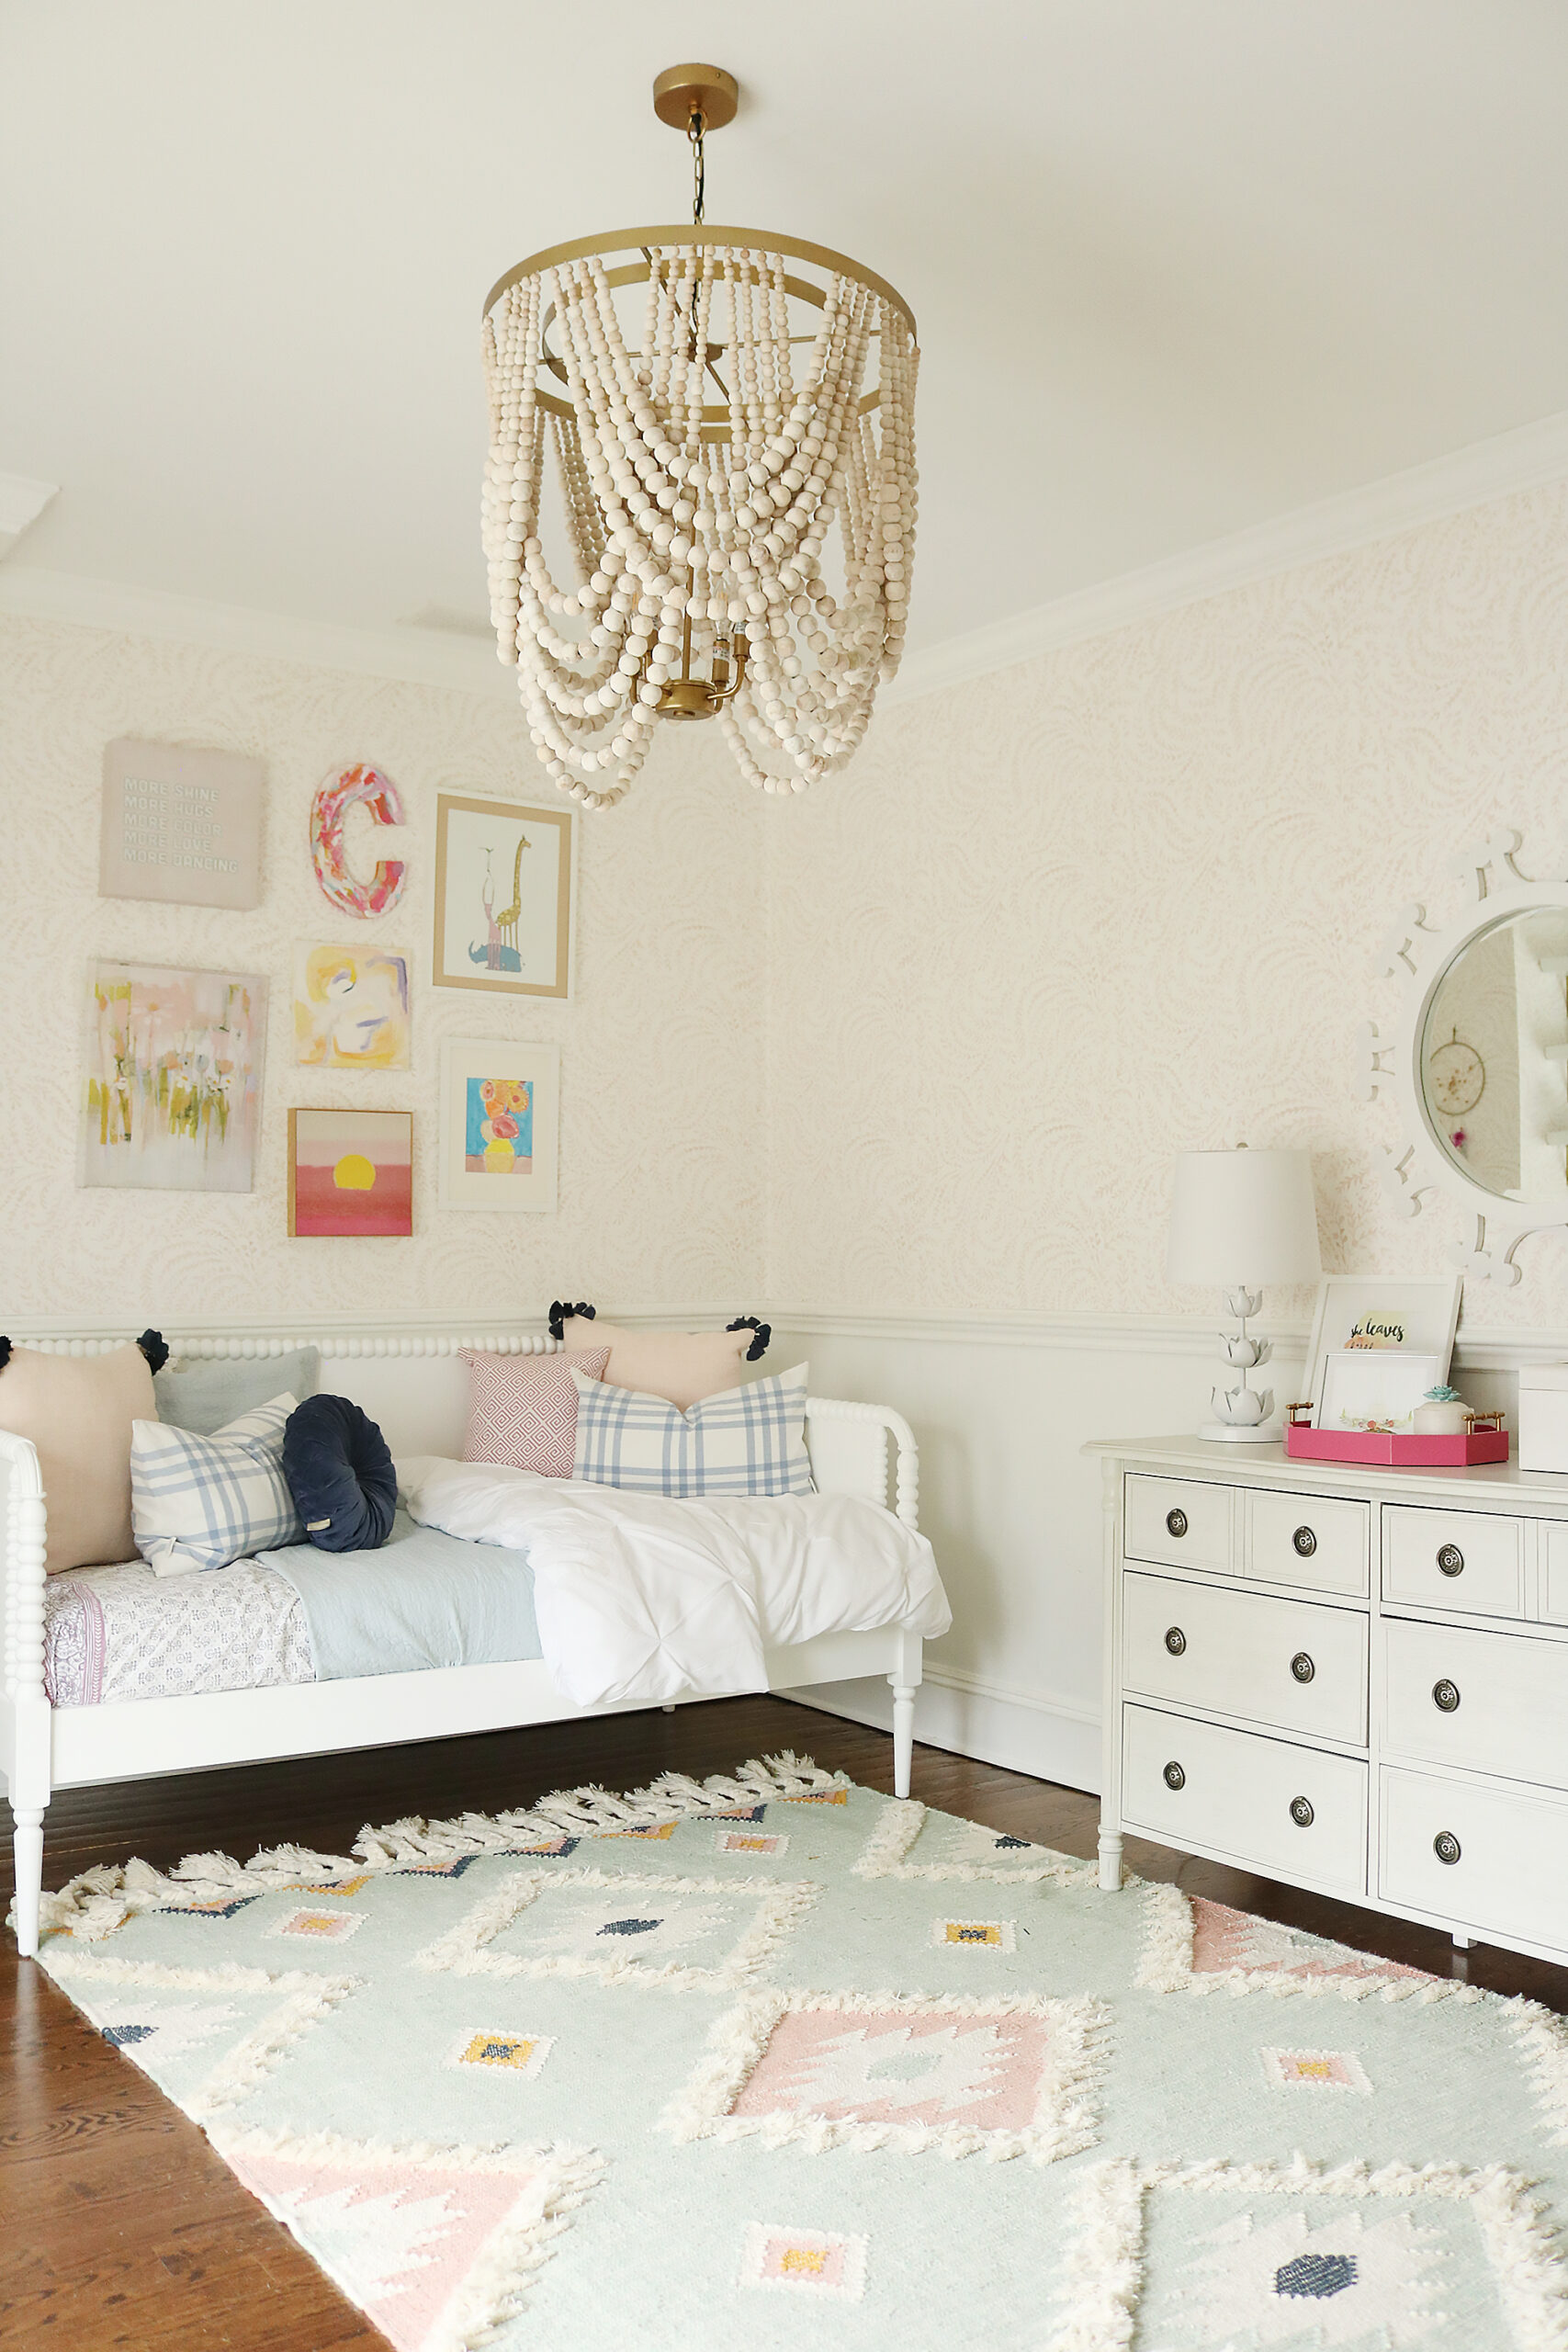 Light Blue Pink Girls Bedroom that mixes textures and art pieces.  It's playful and charming girl's bedroom.  Before and after bedroom, pastel colors girl bedroom, tween girl bedroom || Darling Darleen Top CT Lifestyle Blogger #girlsbedroom